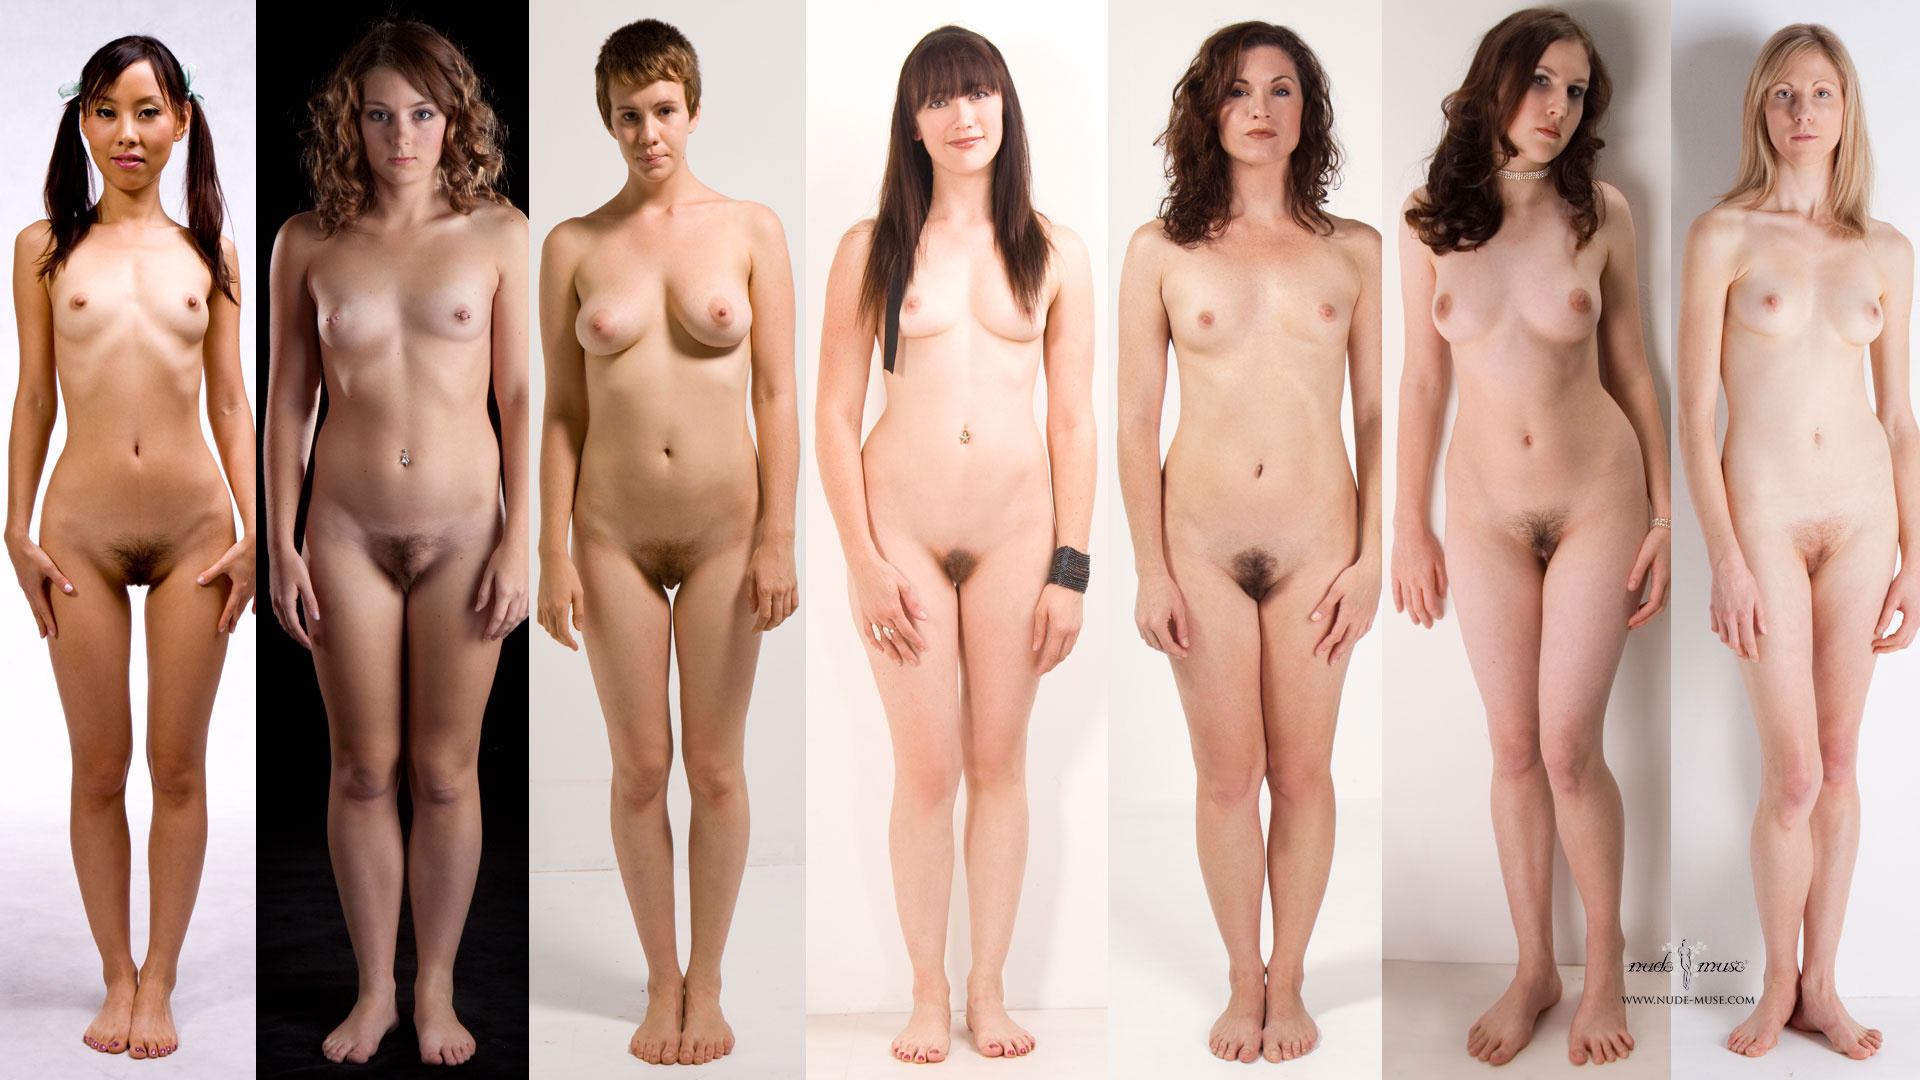 Groups Of Naked Women Tumblr